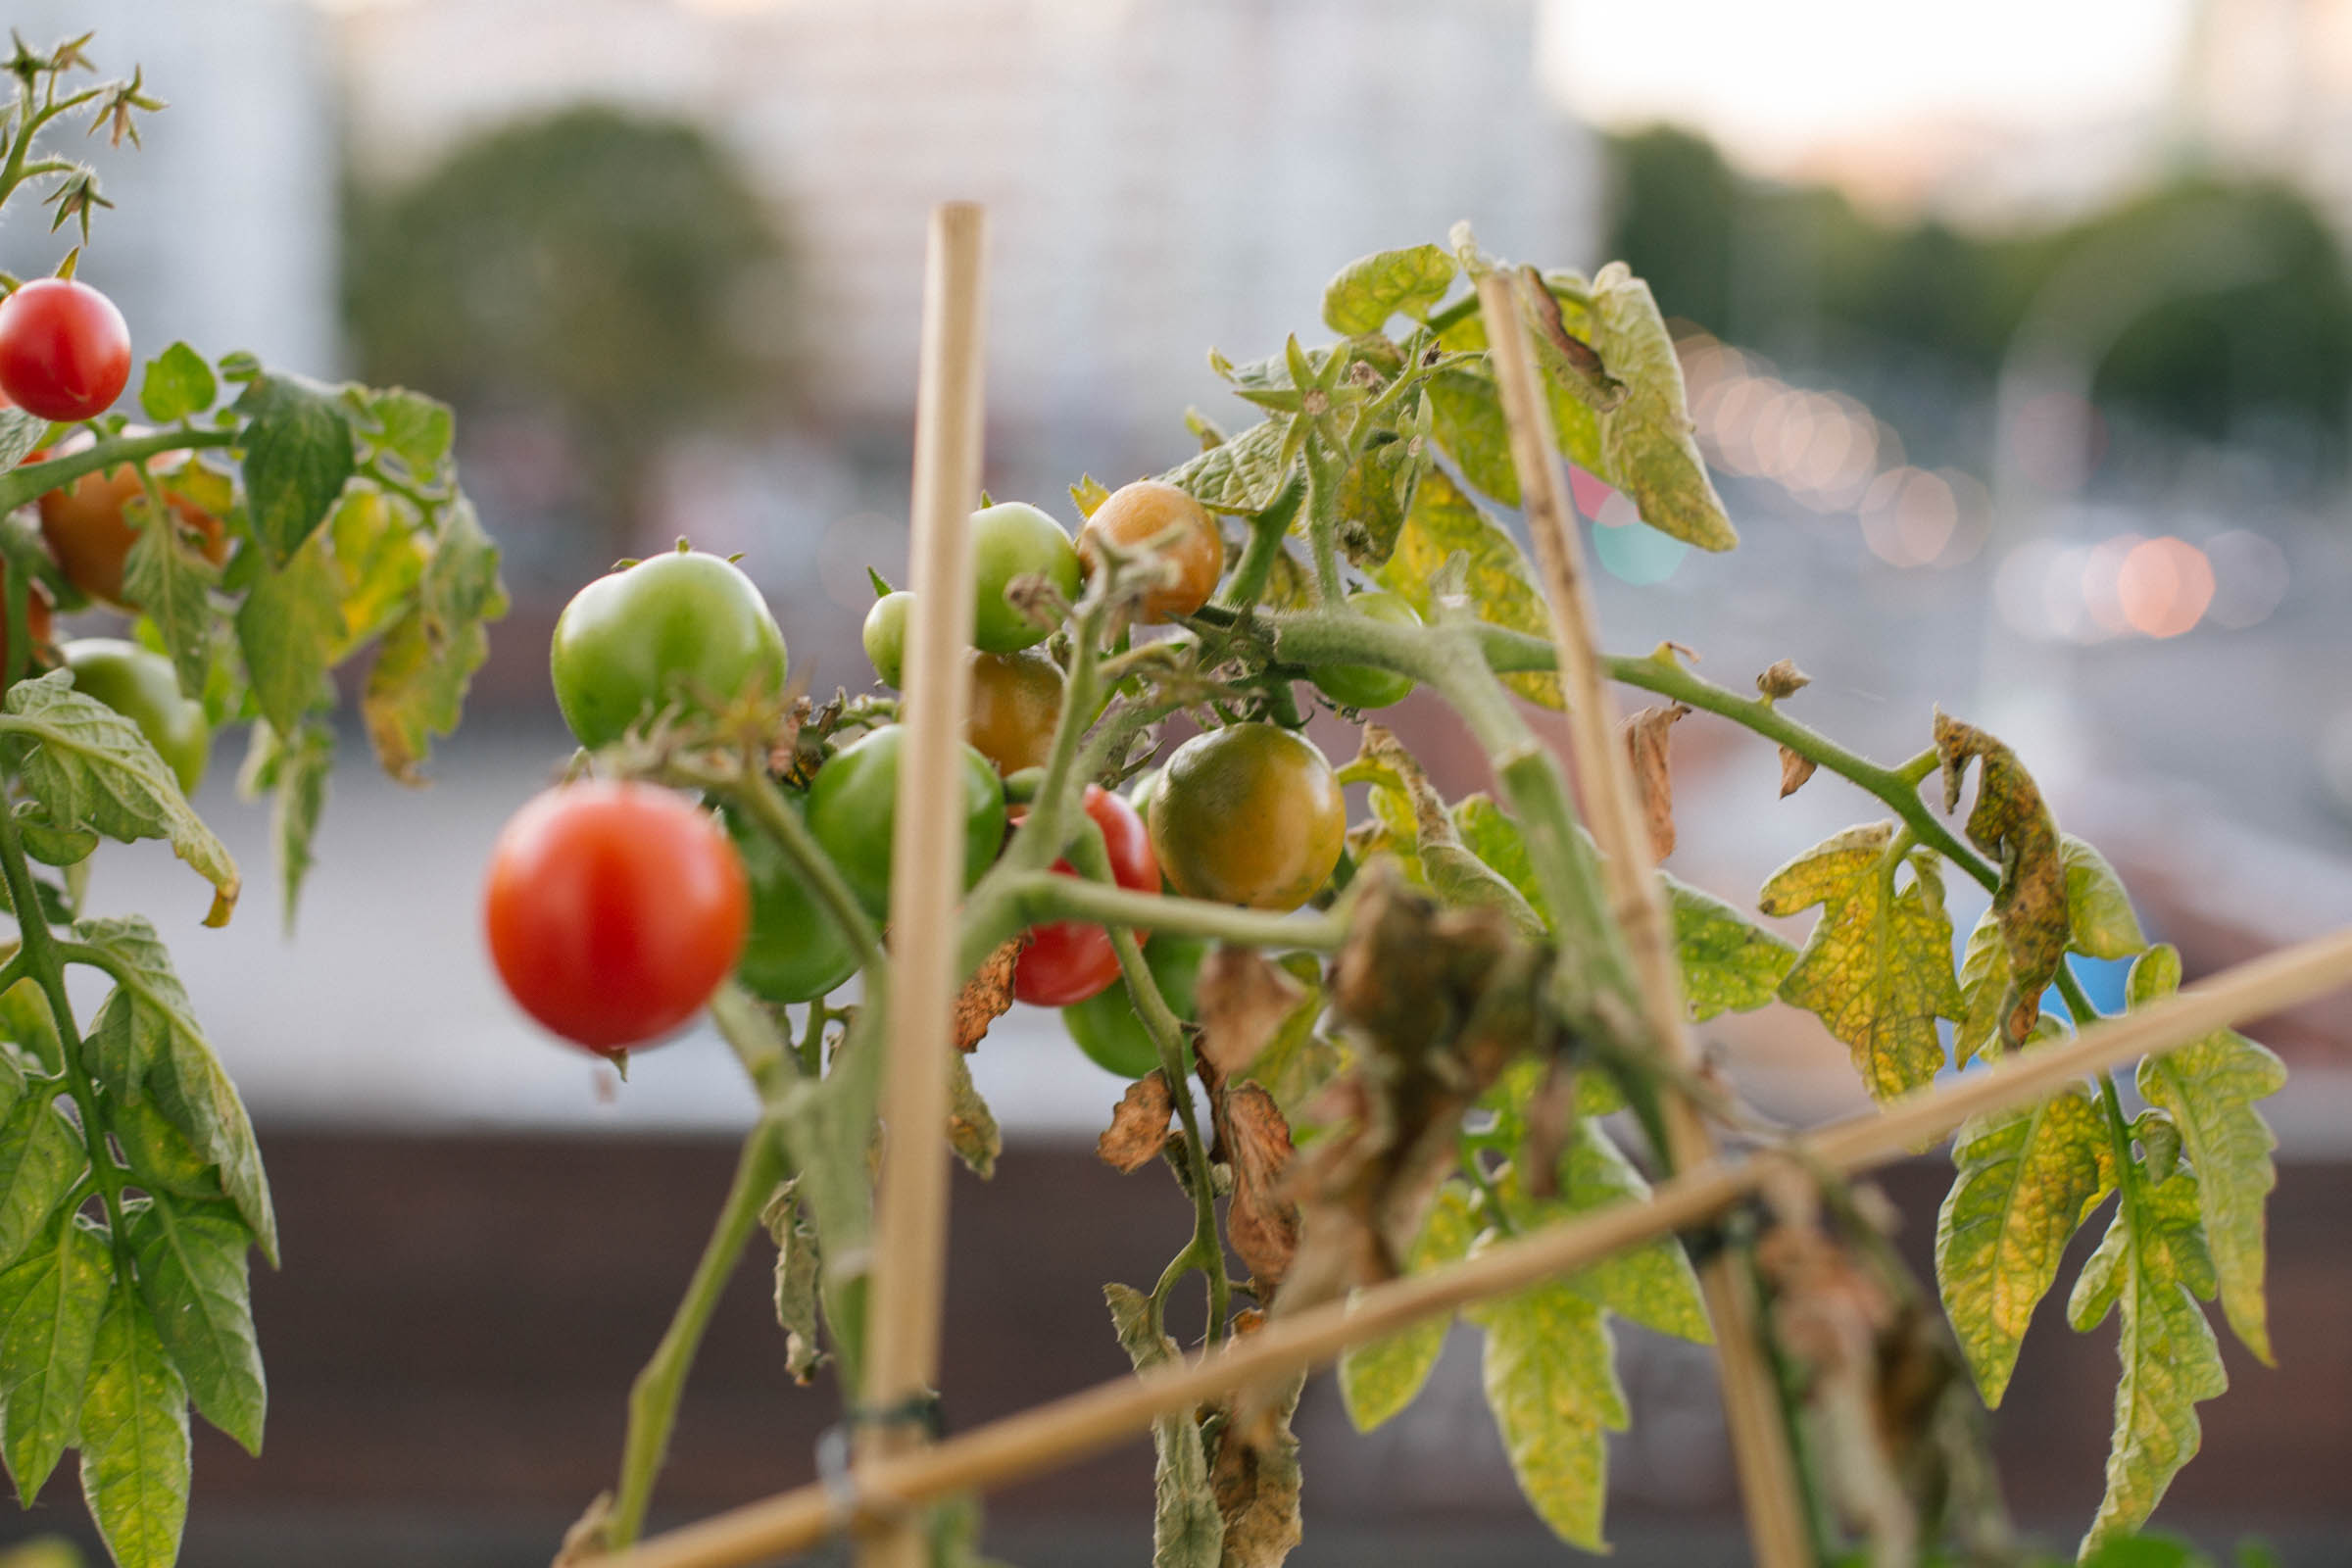 October 2015: The last tomatoes of the year.